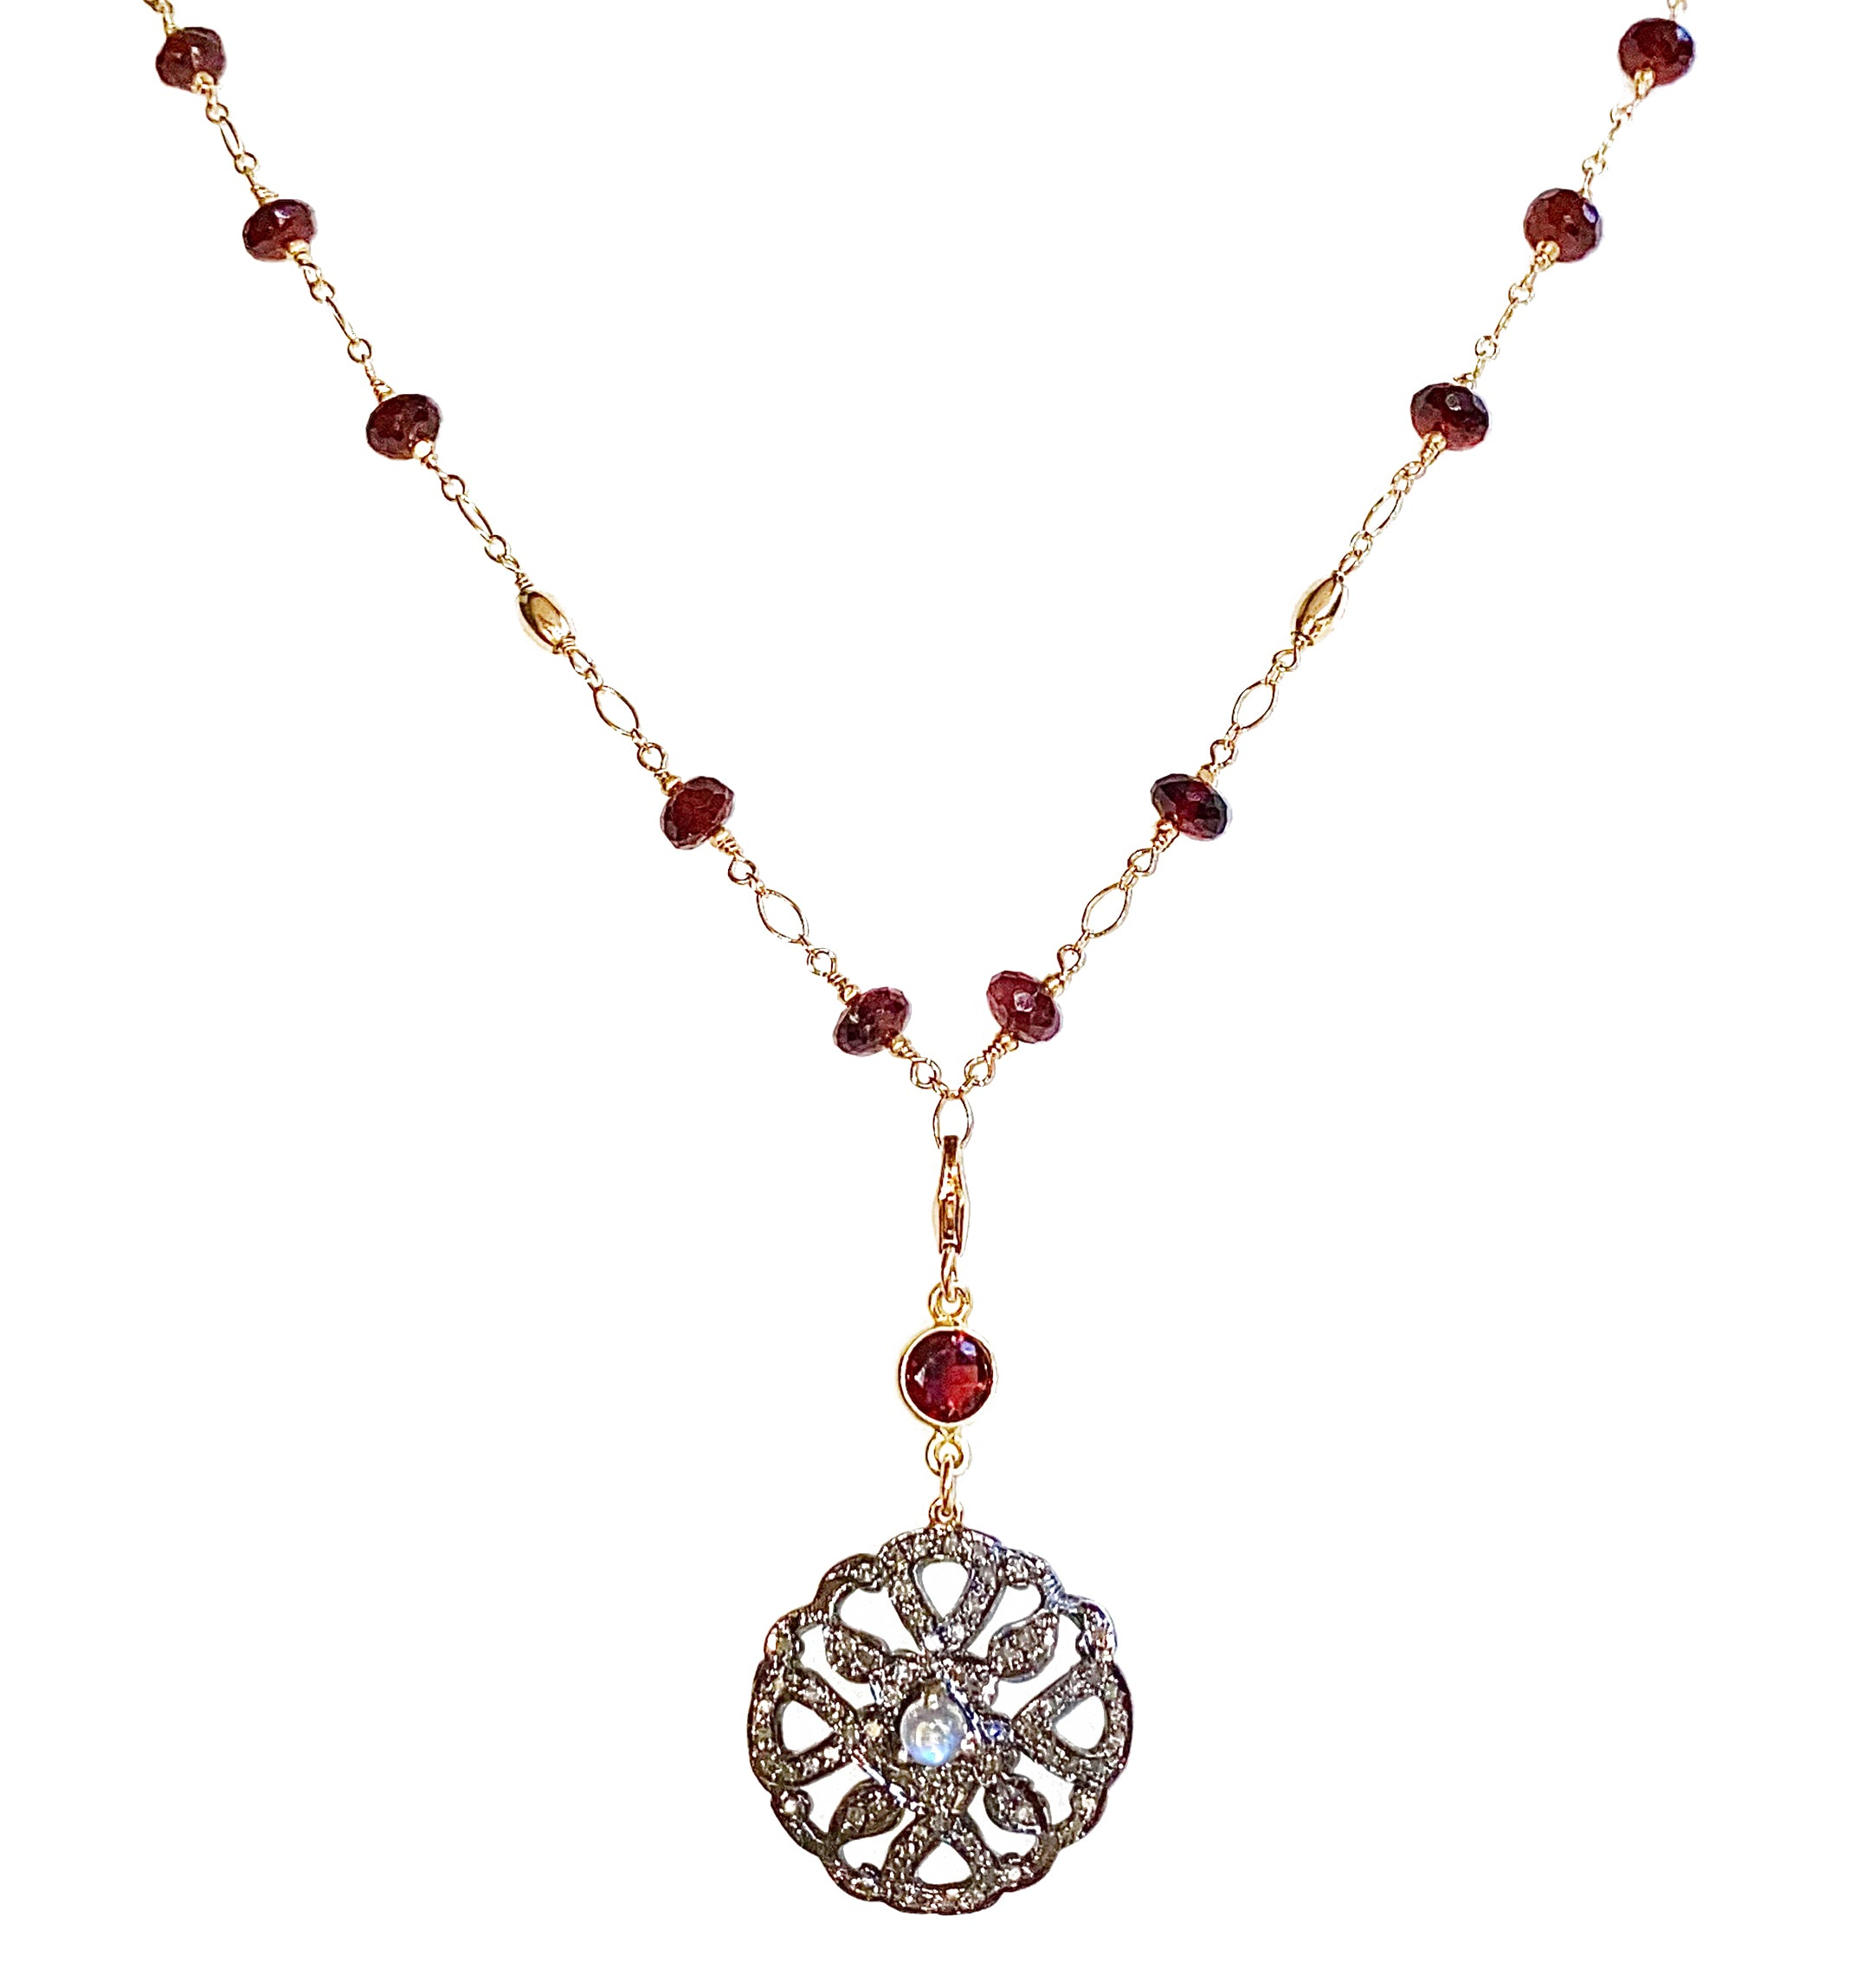 Pave Diamond, Moonstone & Garnet Necklace